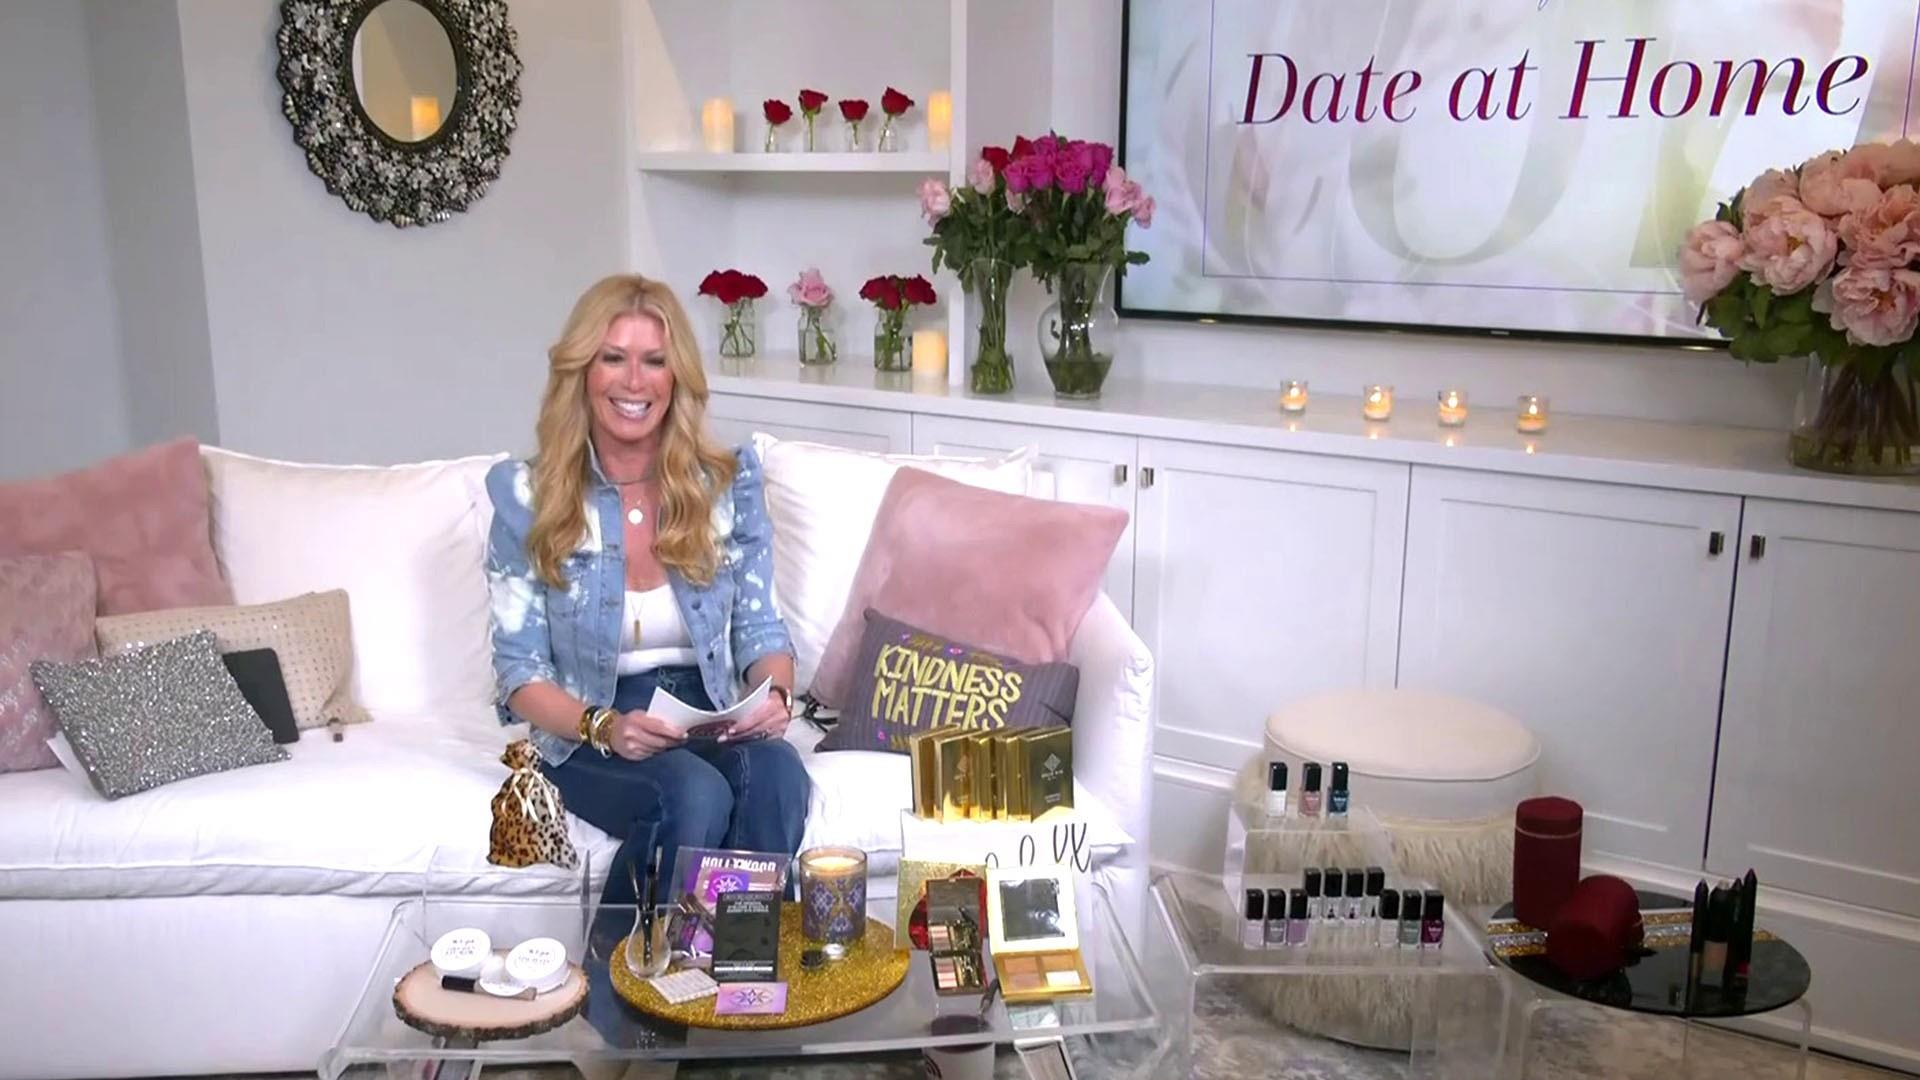 news.yahoo.com: At Home with Jill Martin: Beauty deals to shop now